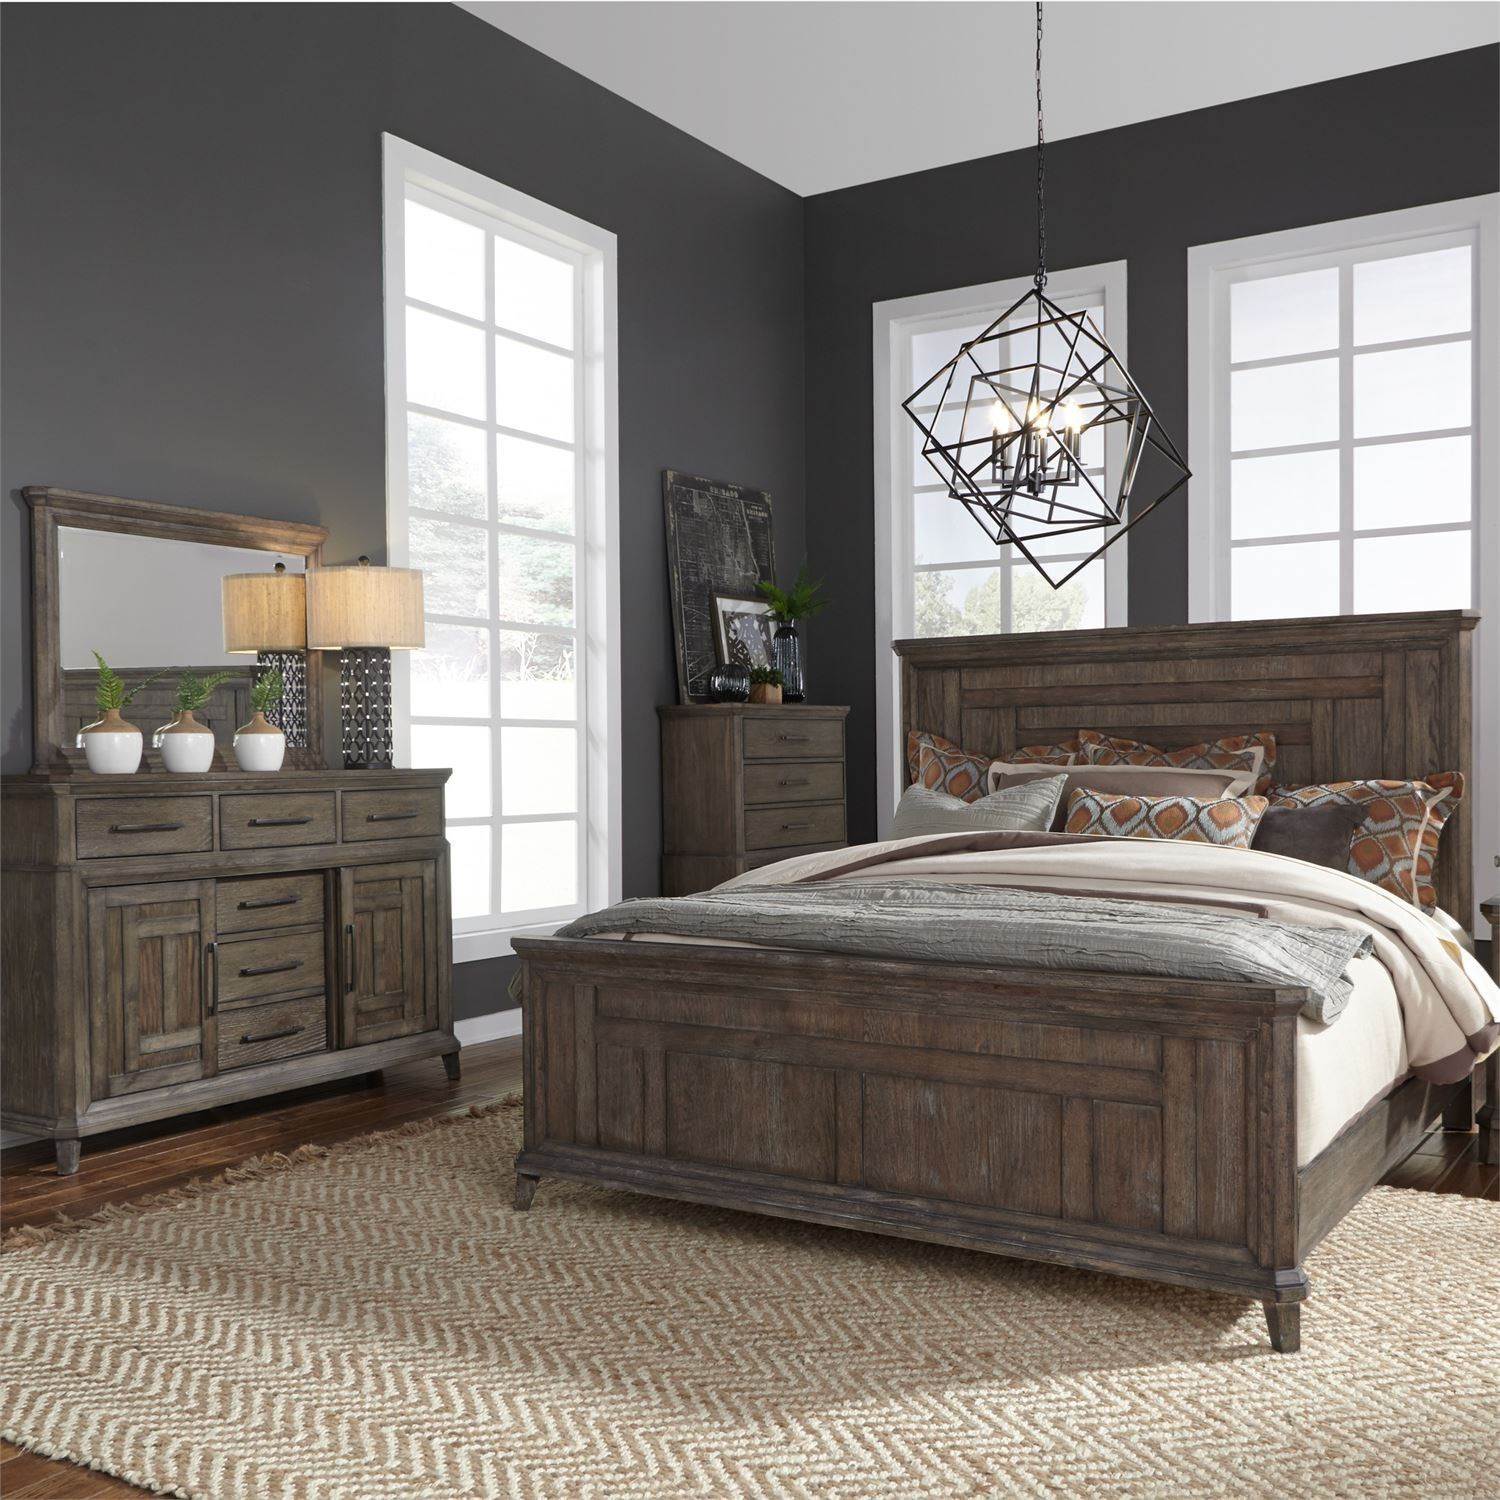 Artisan Prairie King Bedroom Group by Liberty Furniture at Northeast Factory Direct